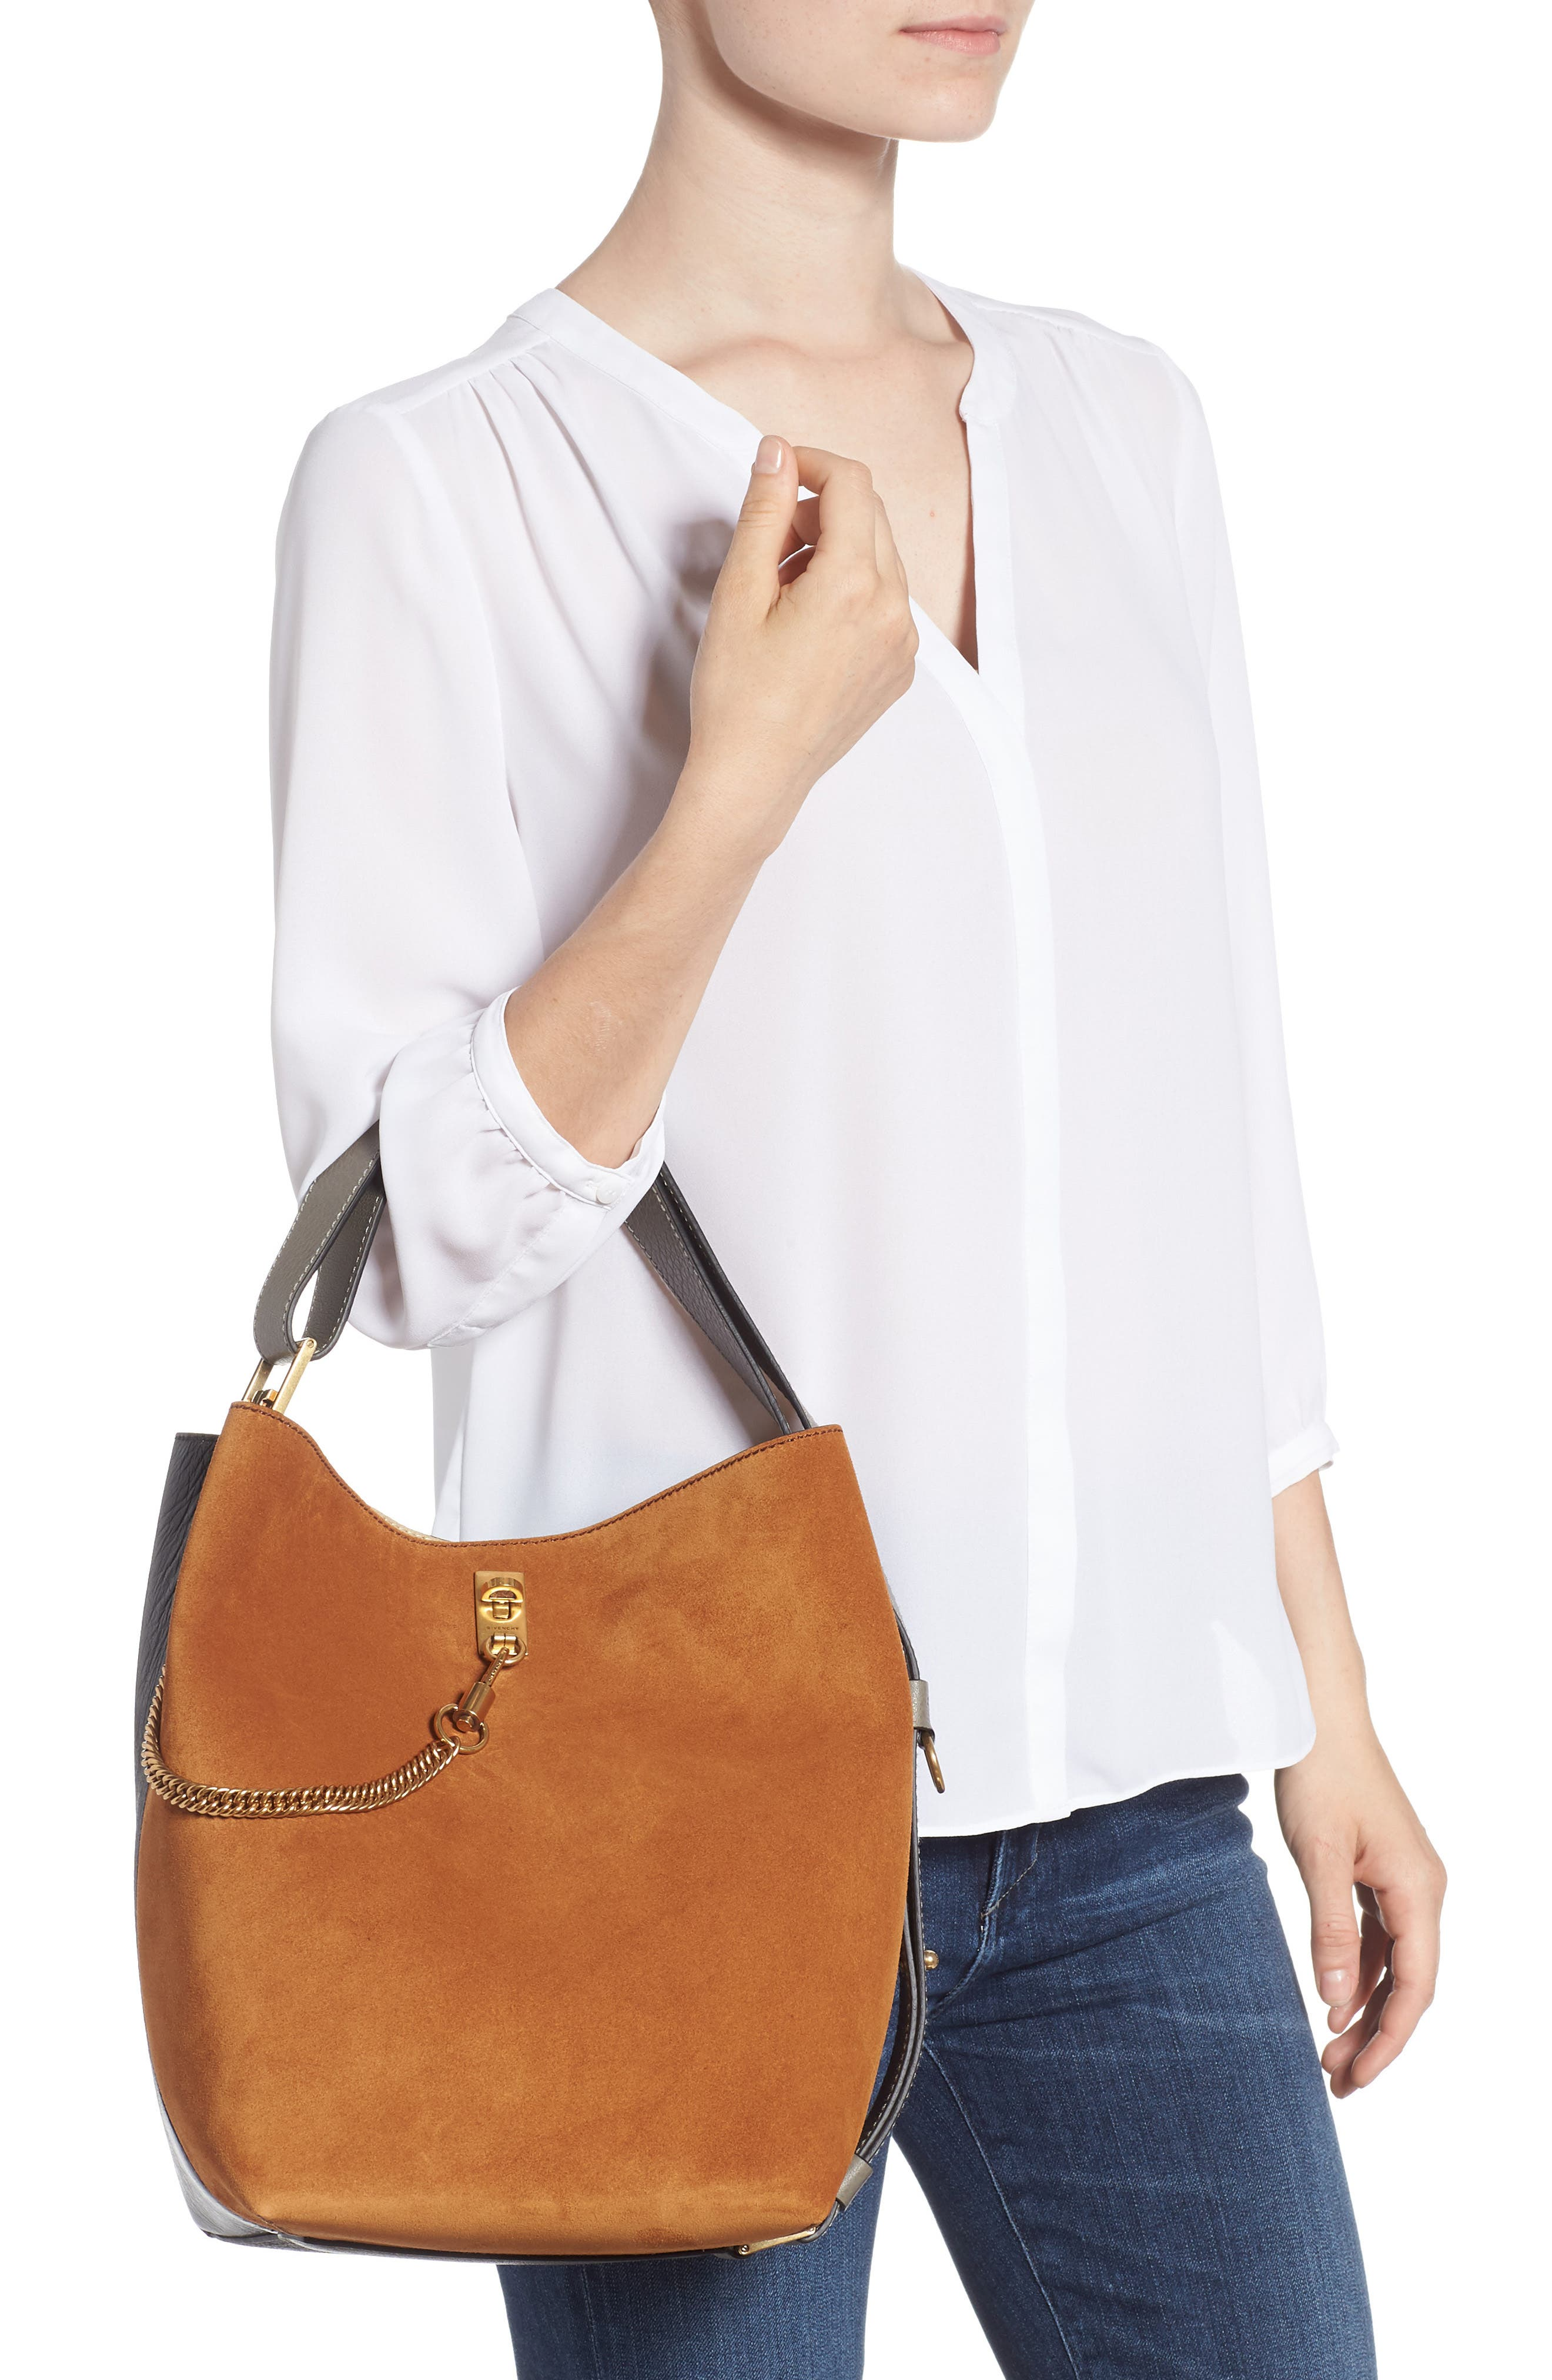 Medium GV Lambskin Bucket Bag,                             Alternate thumbnail 2, color,                             BLACK/ CHESTNUT